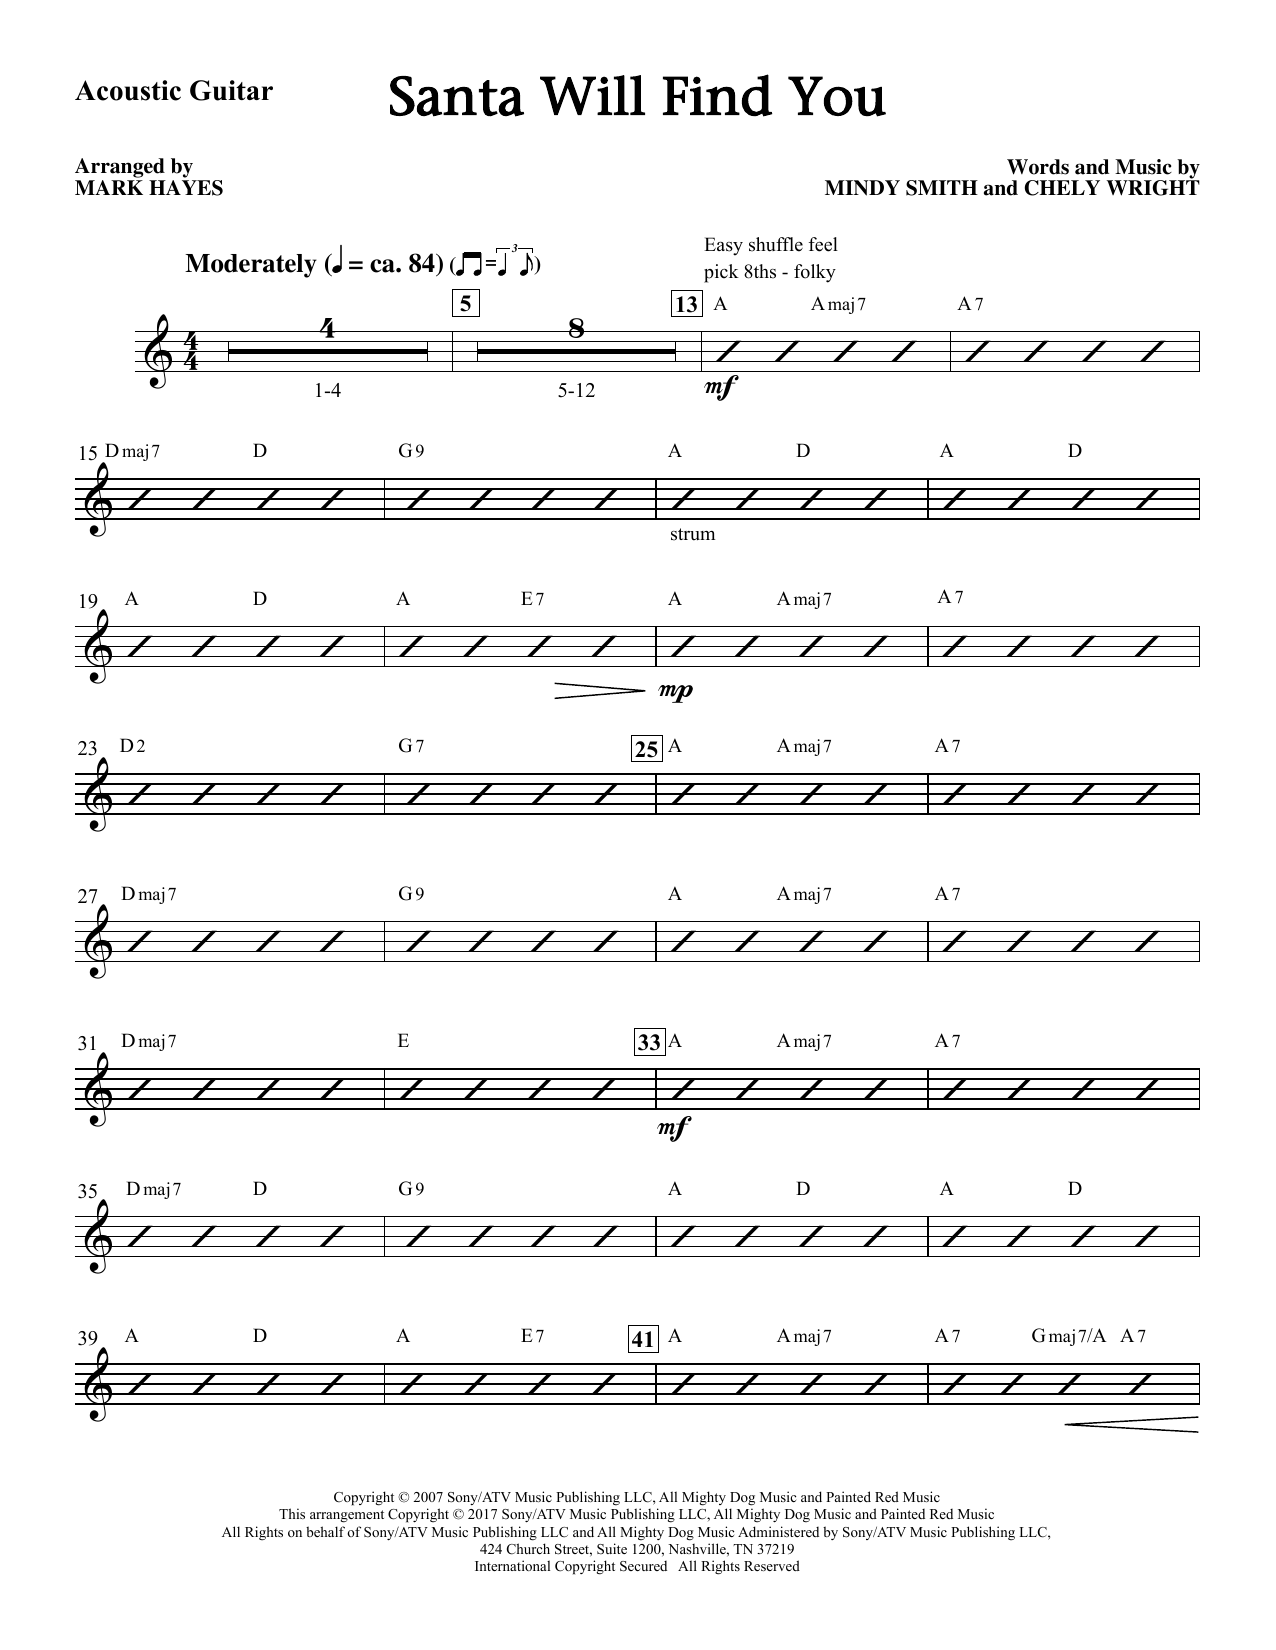 Mark Hayes Santa Will Find You - Acoustic Guitar sheet music notes and chords. Download Printable PDF.